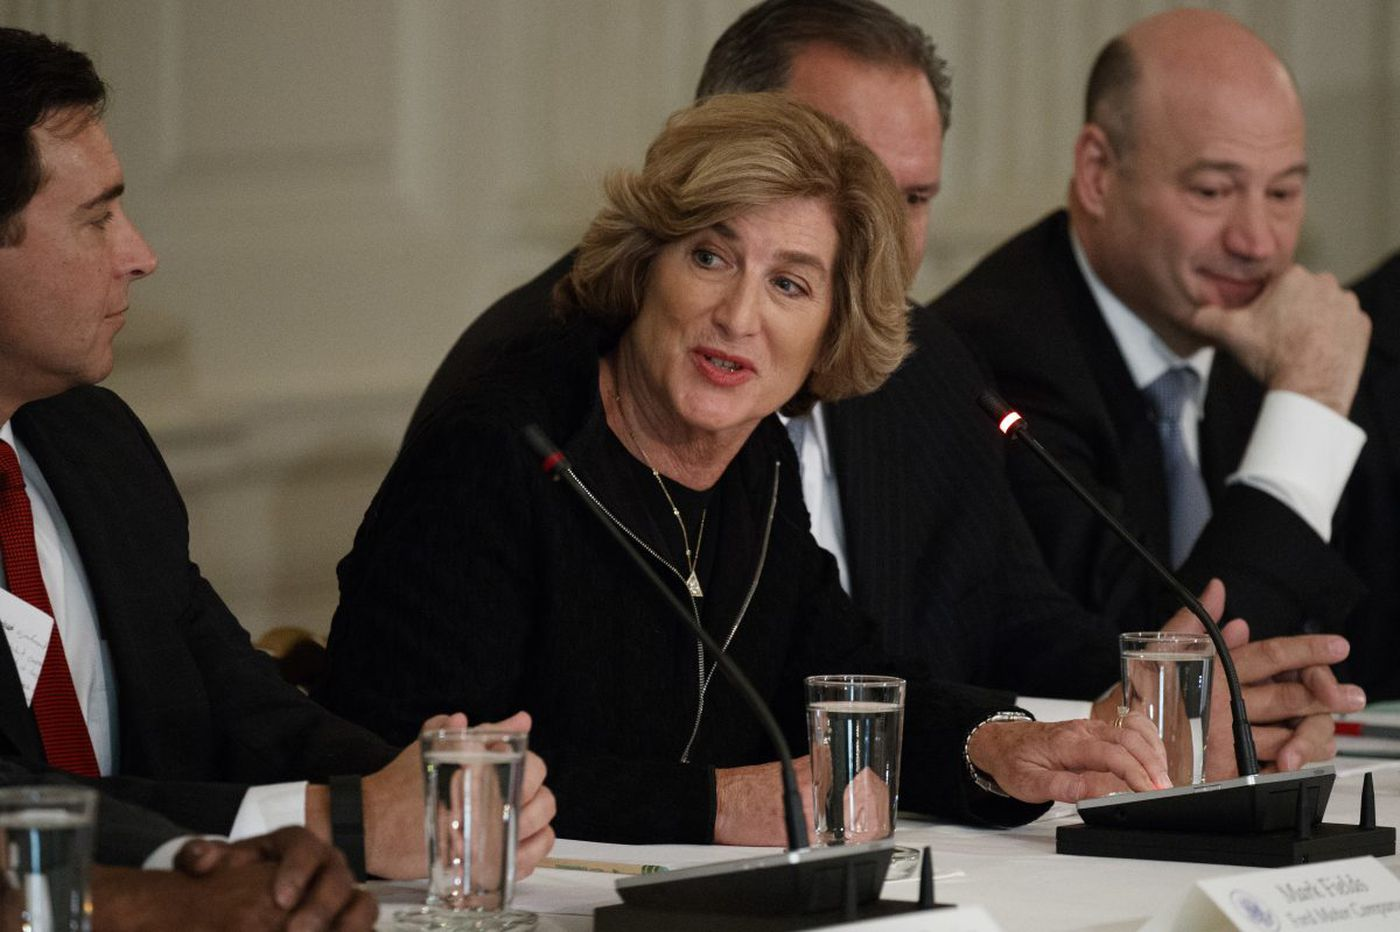 Campbell Soup CEO Denise Morrison retires abruptly as growth plans falter